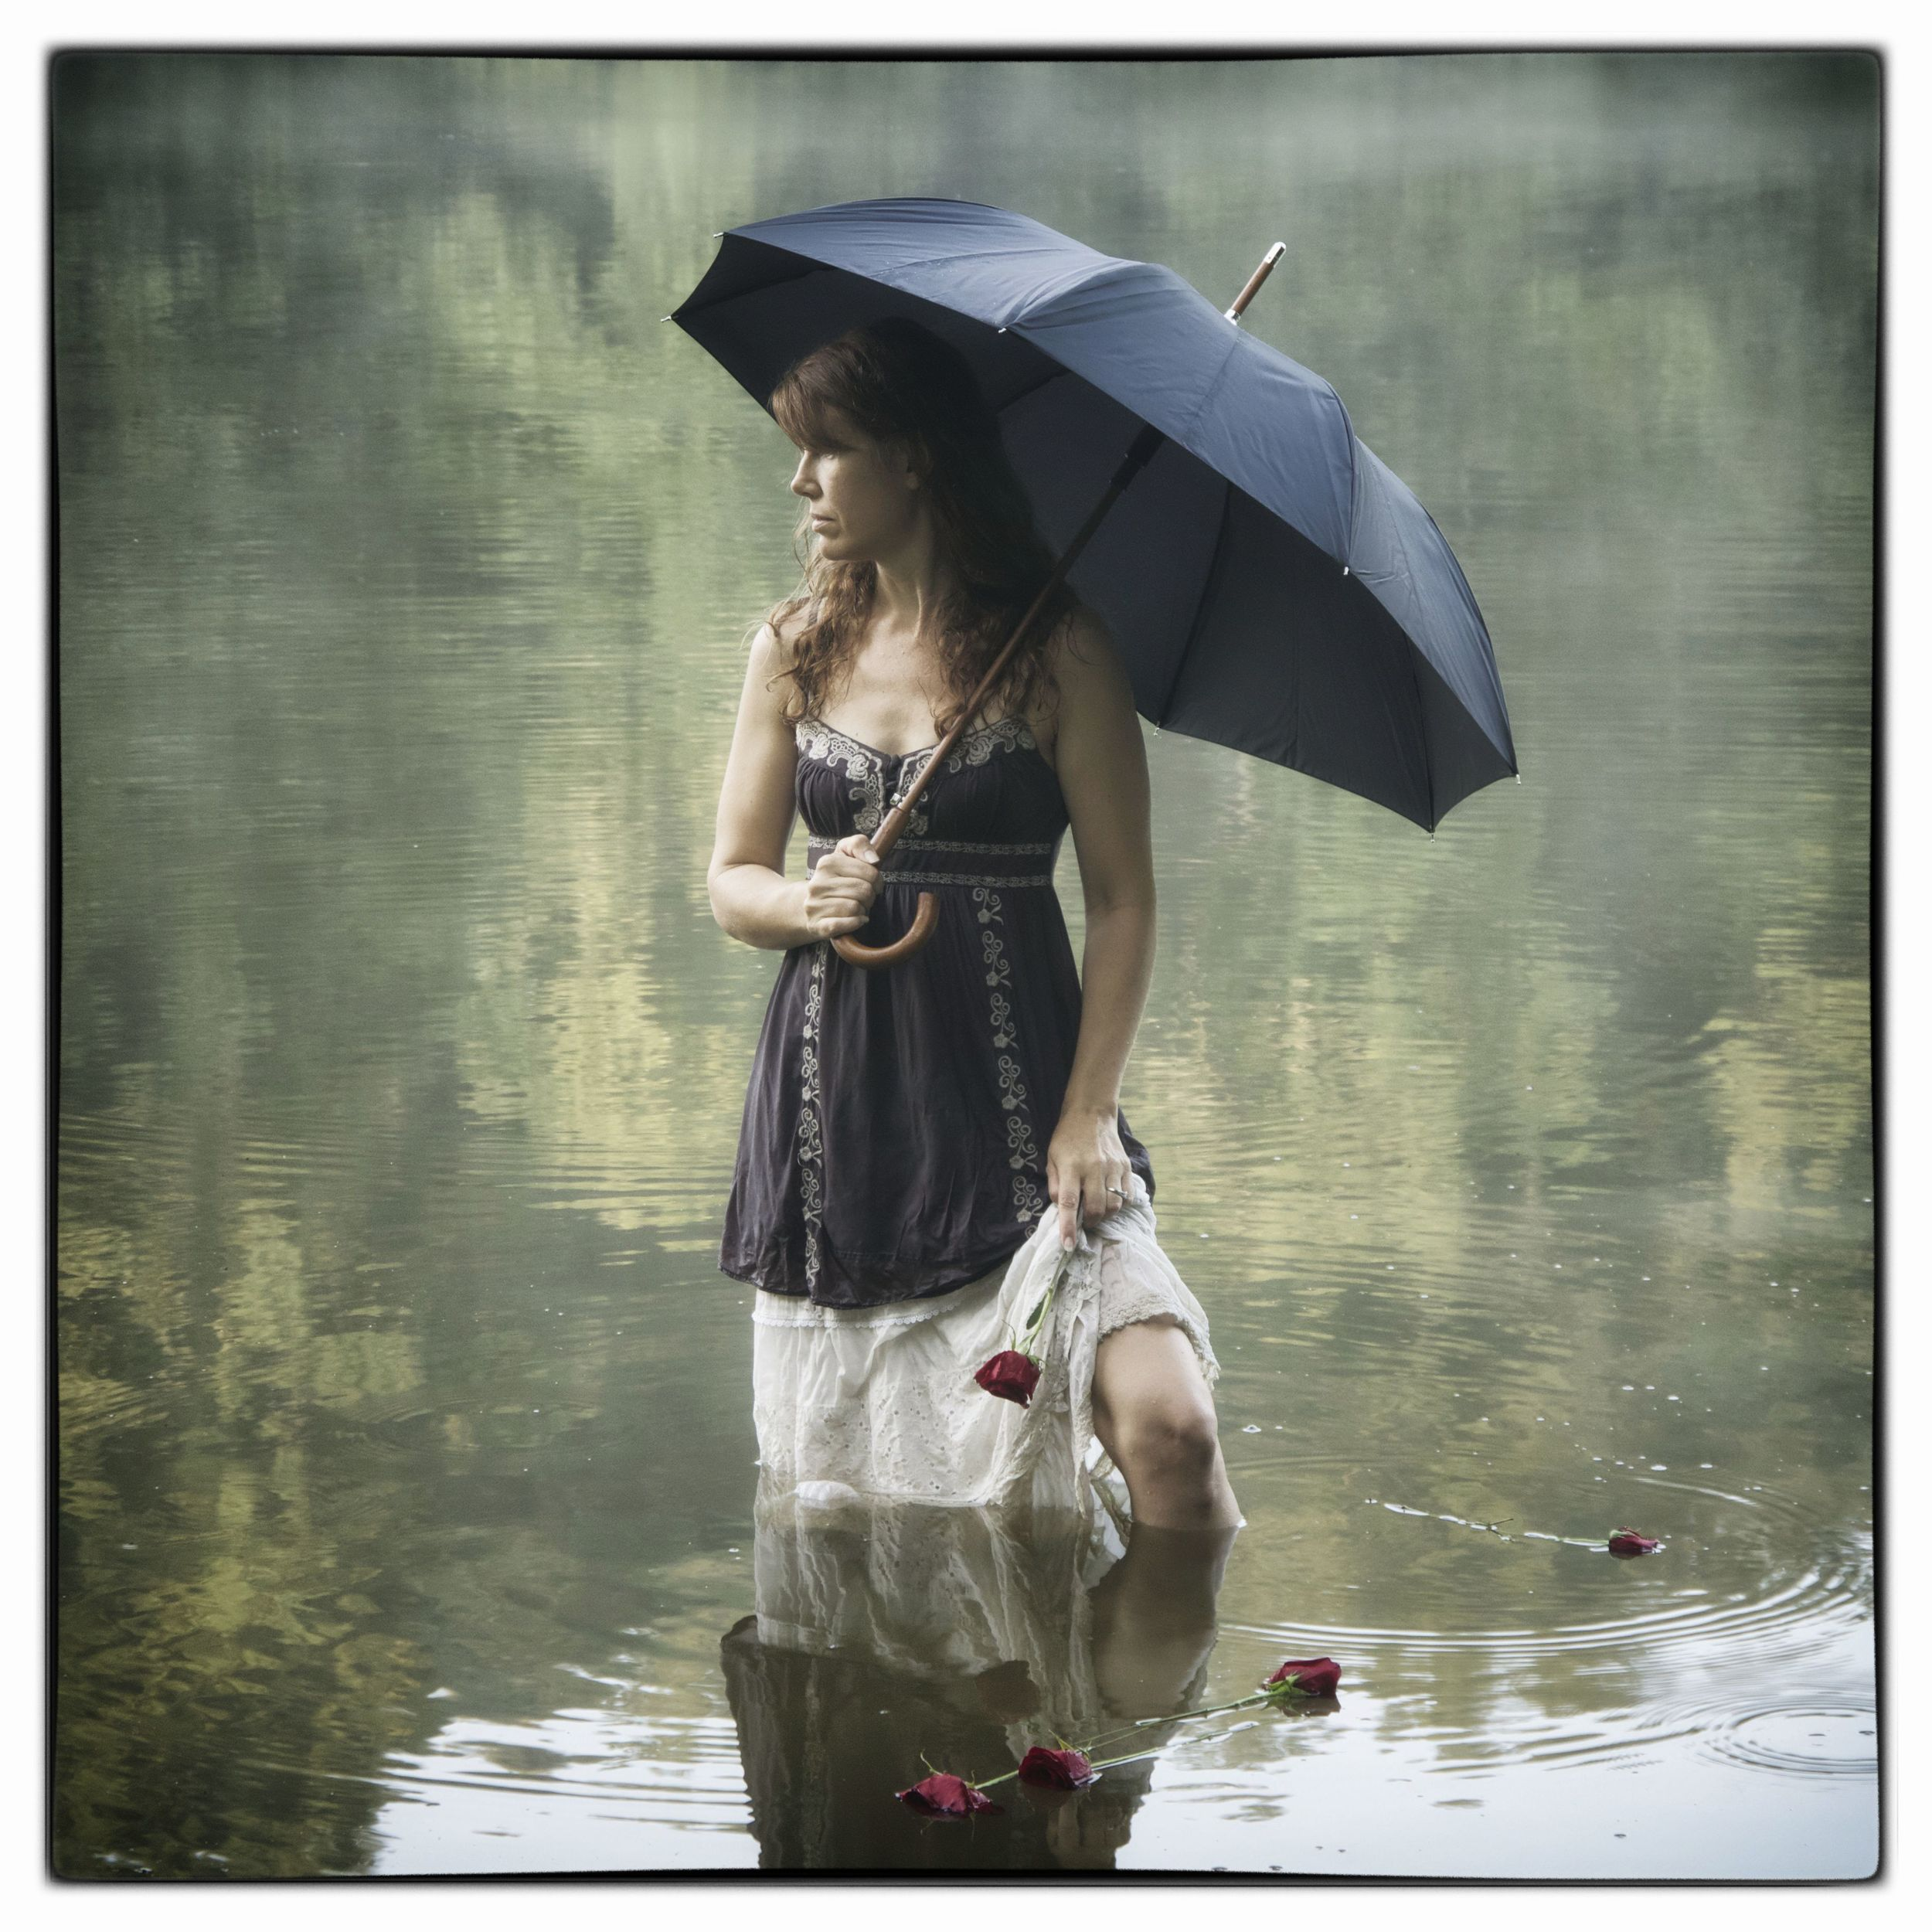 Lady with Black Umbrella I